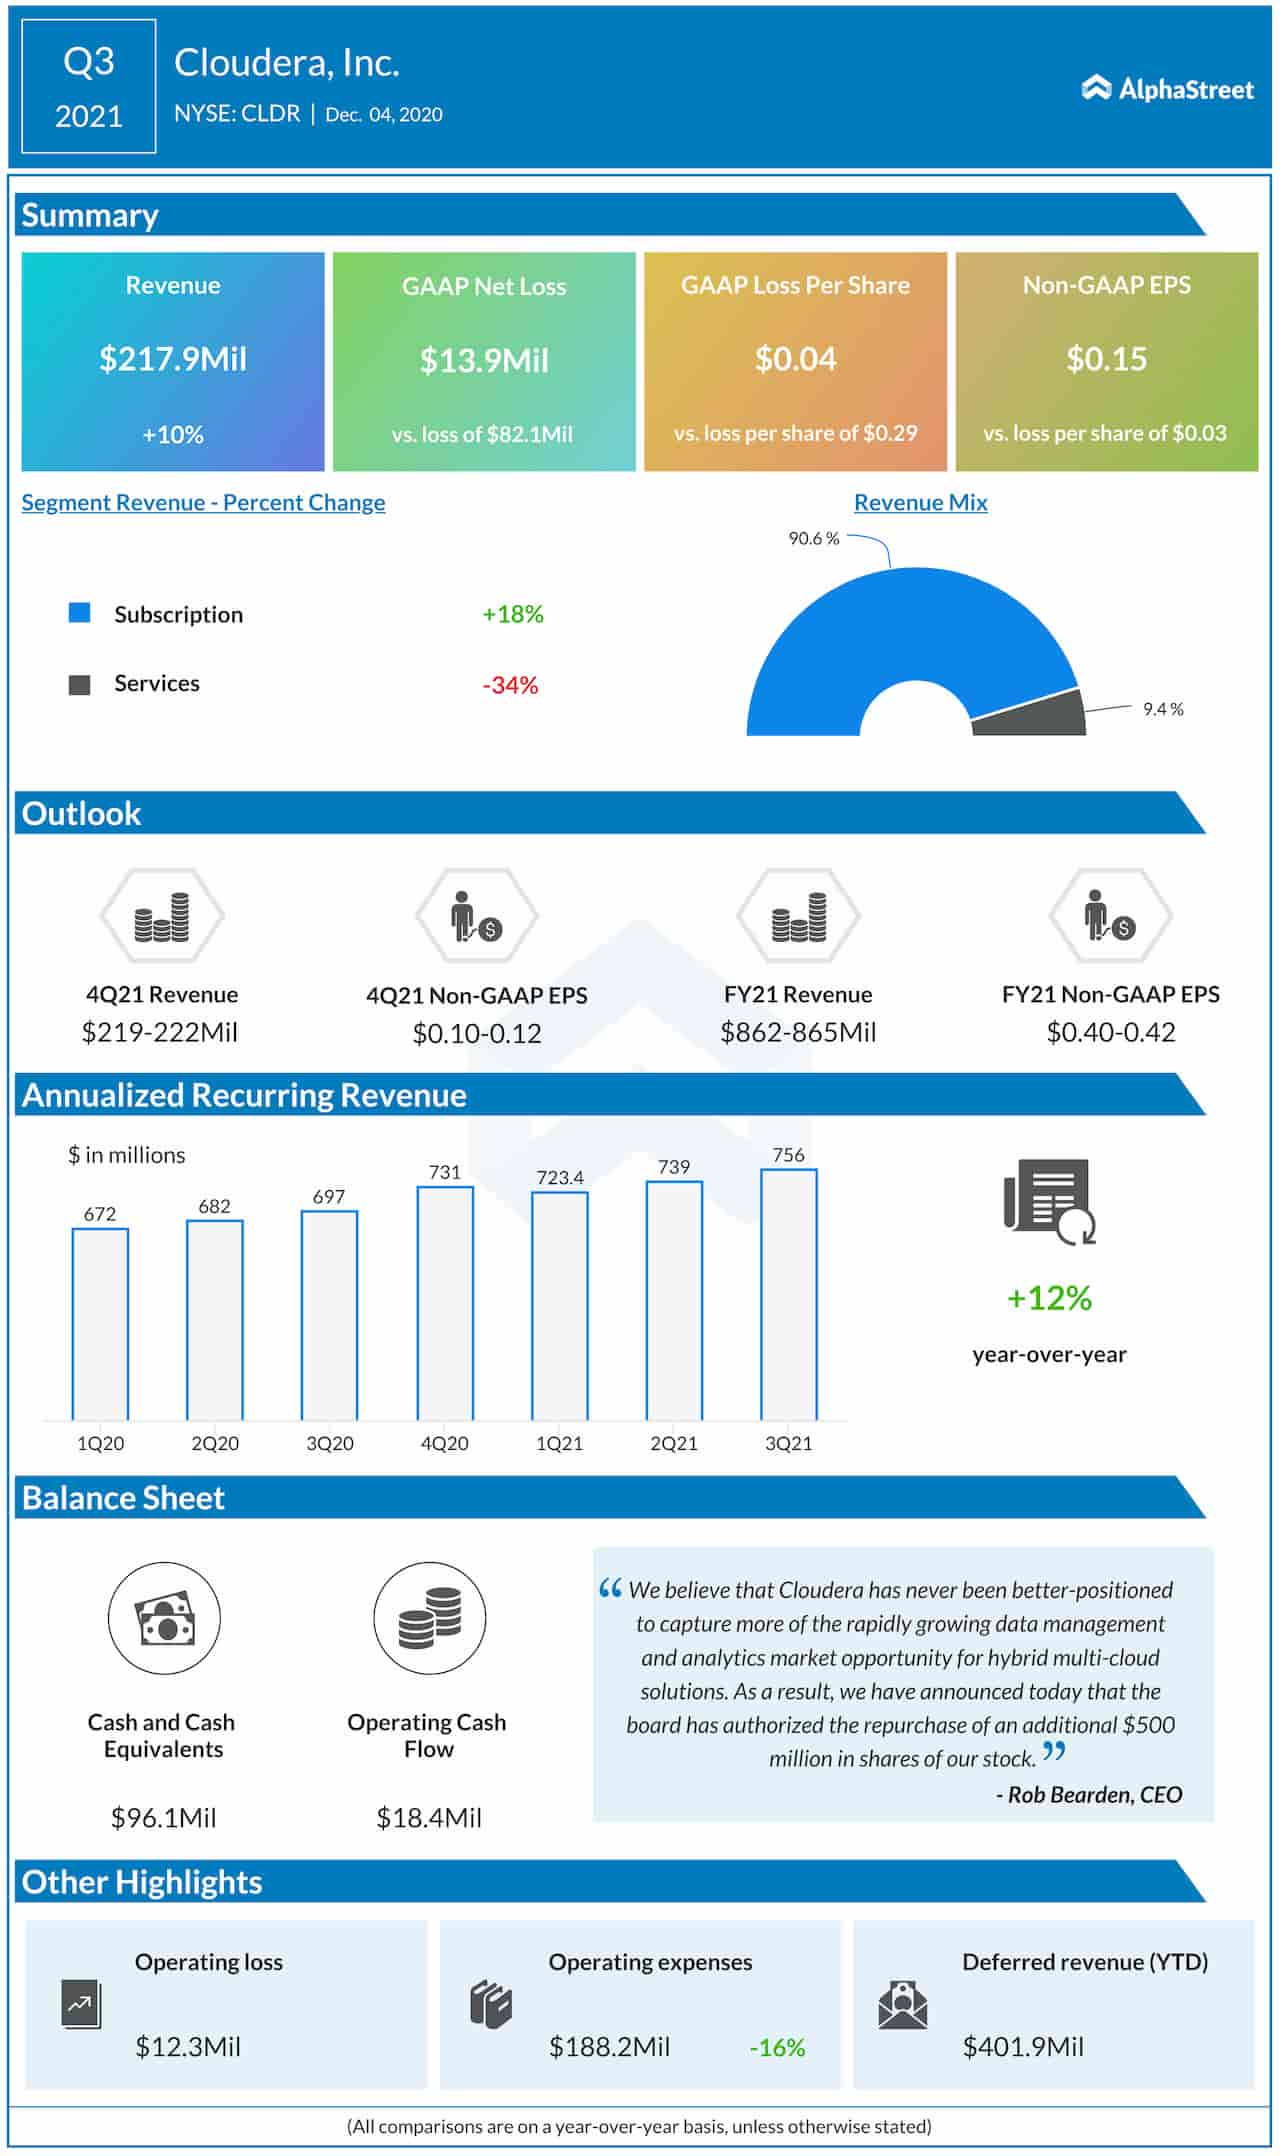 Cloudera-Q3-2021-Earnings-Infographic